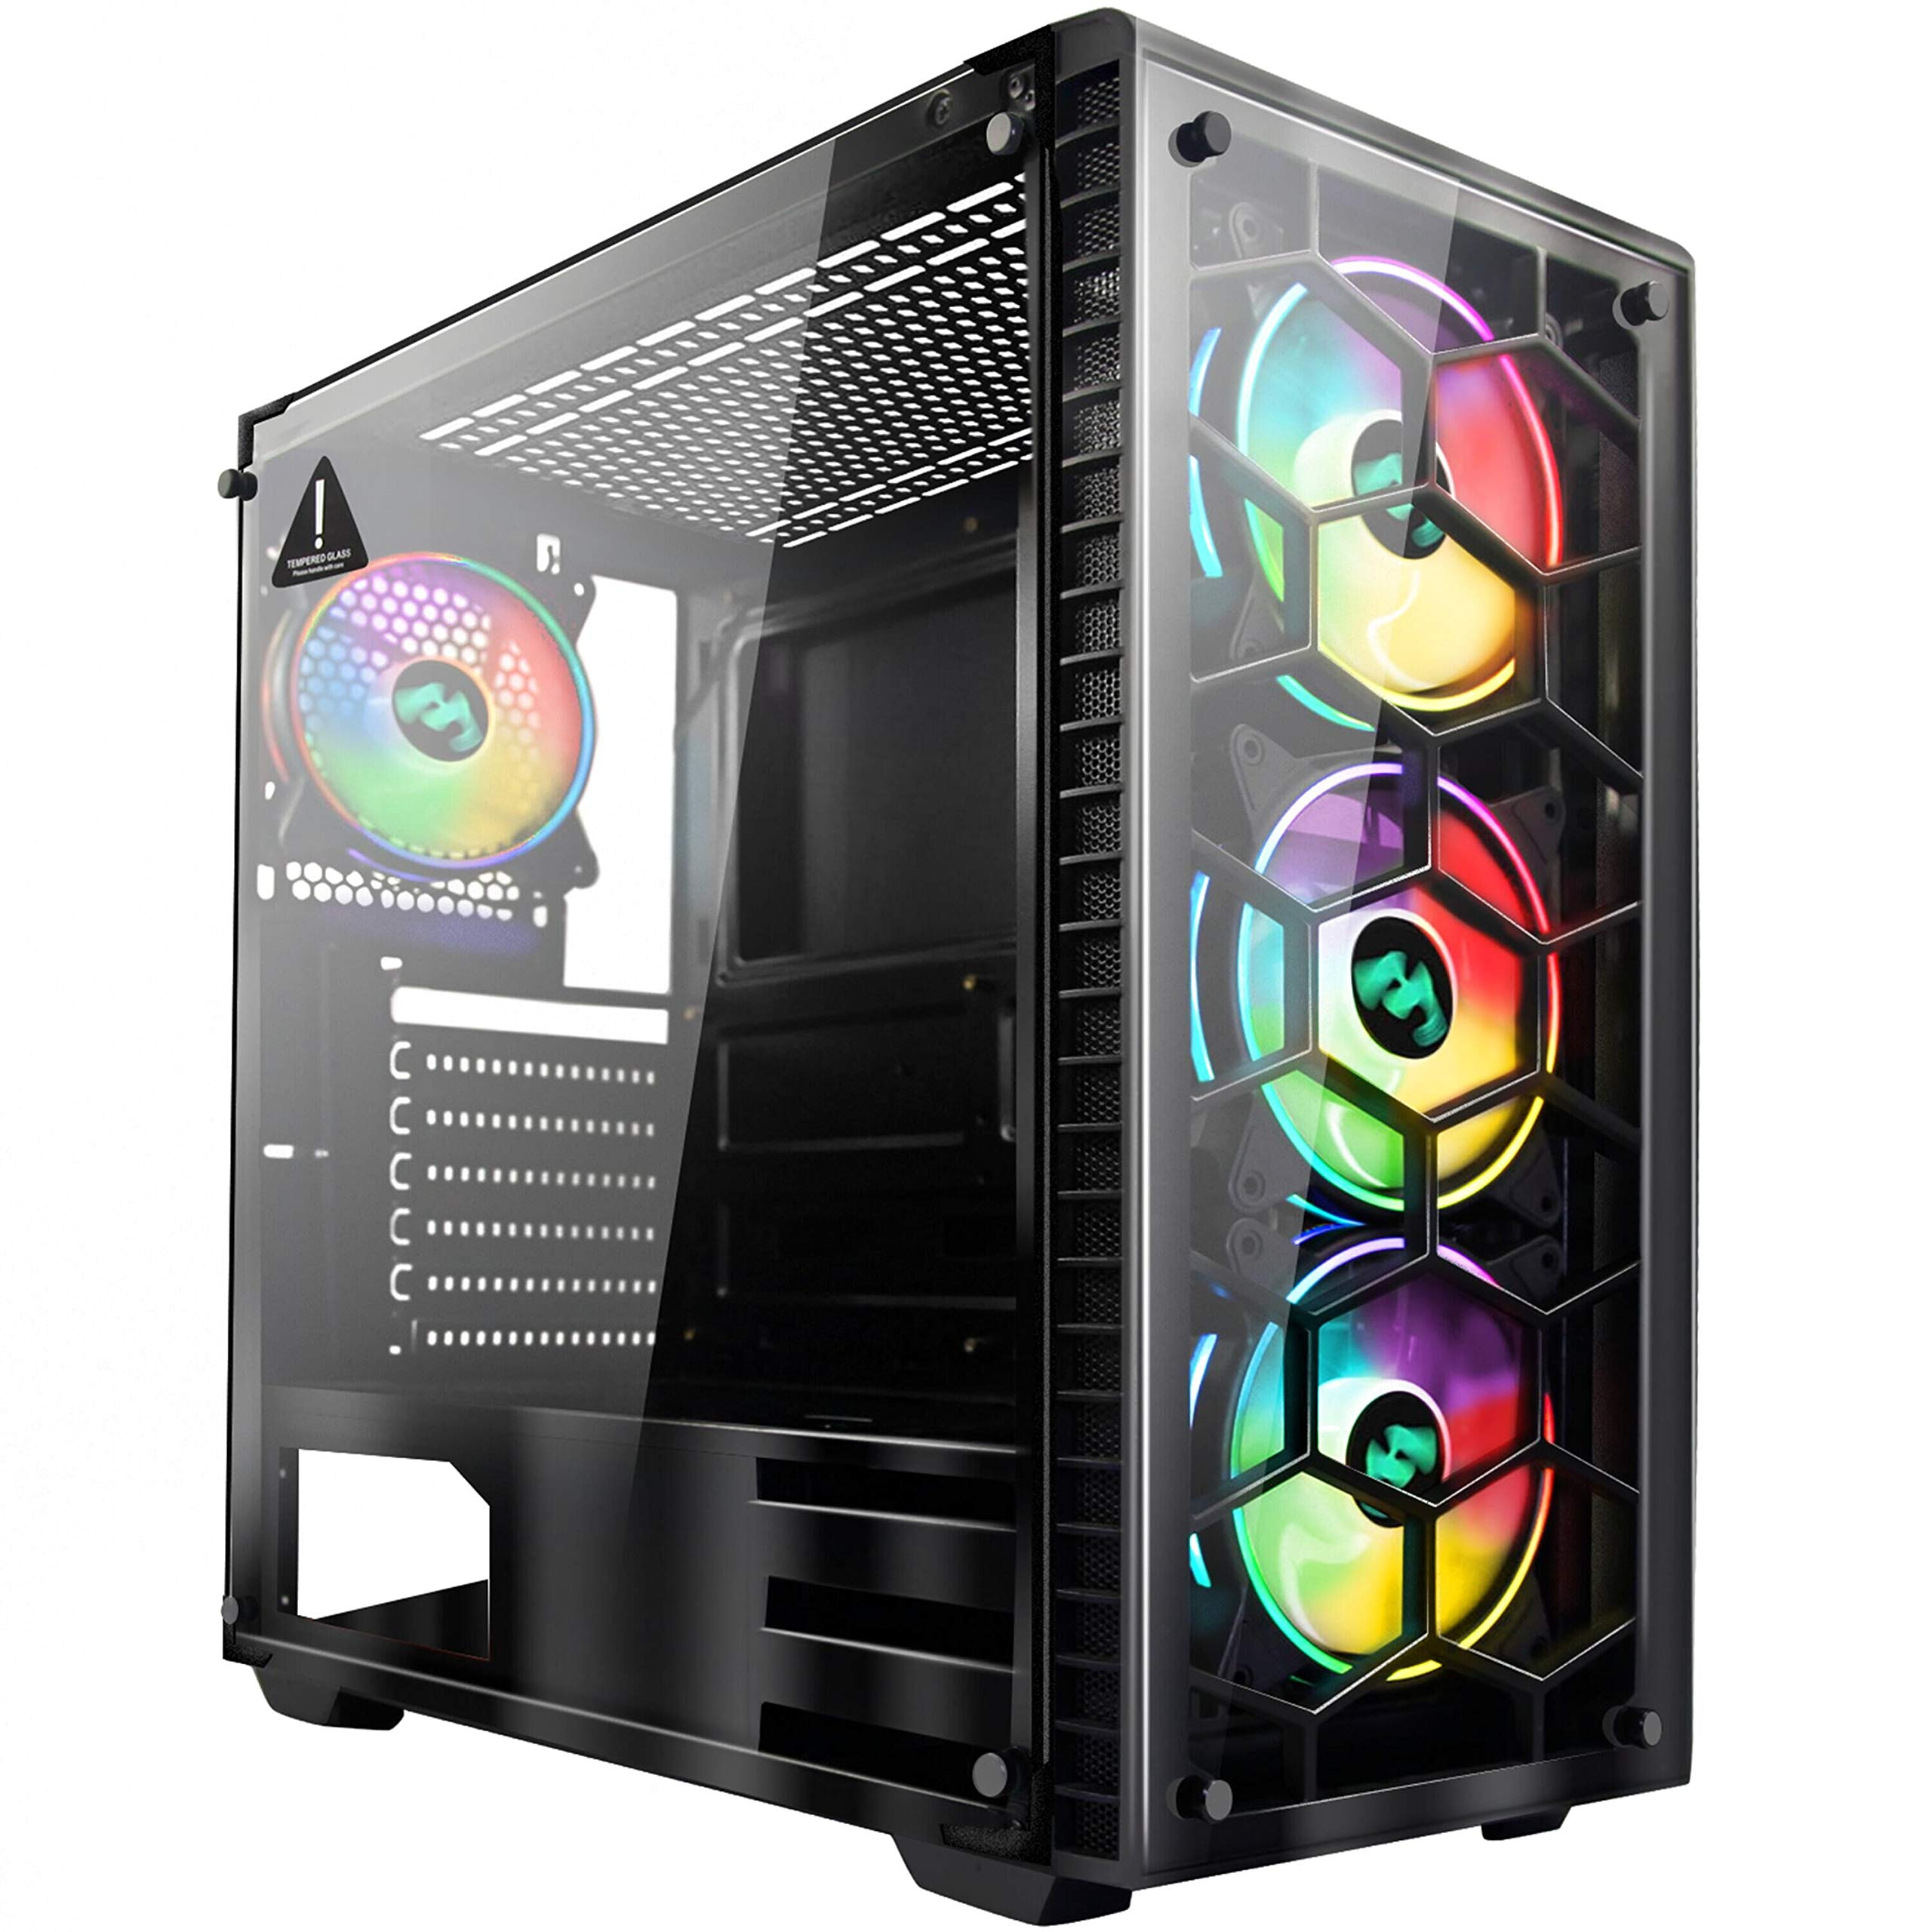 MUSETEX Phantom Black ATX Mid-Tower Desktop Computer Gaming Case USB 3.0 Ports Tempered Glass Windows with 6pcs 120mm Voice Control LED RGB Fans Pre-Installed Remote Control 907